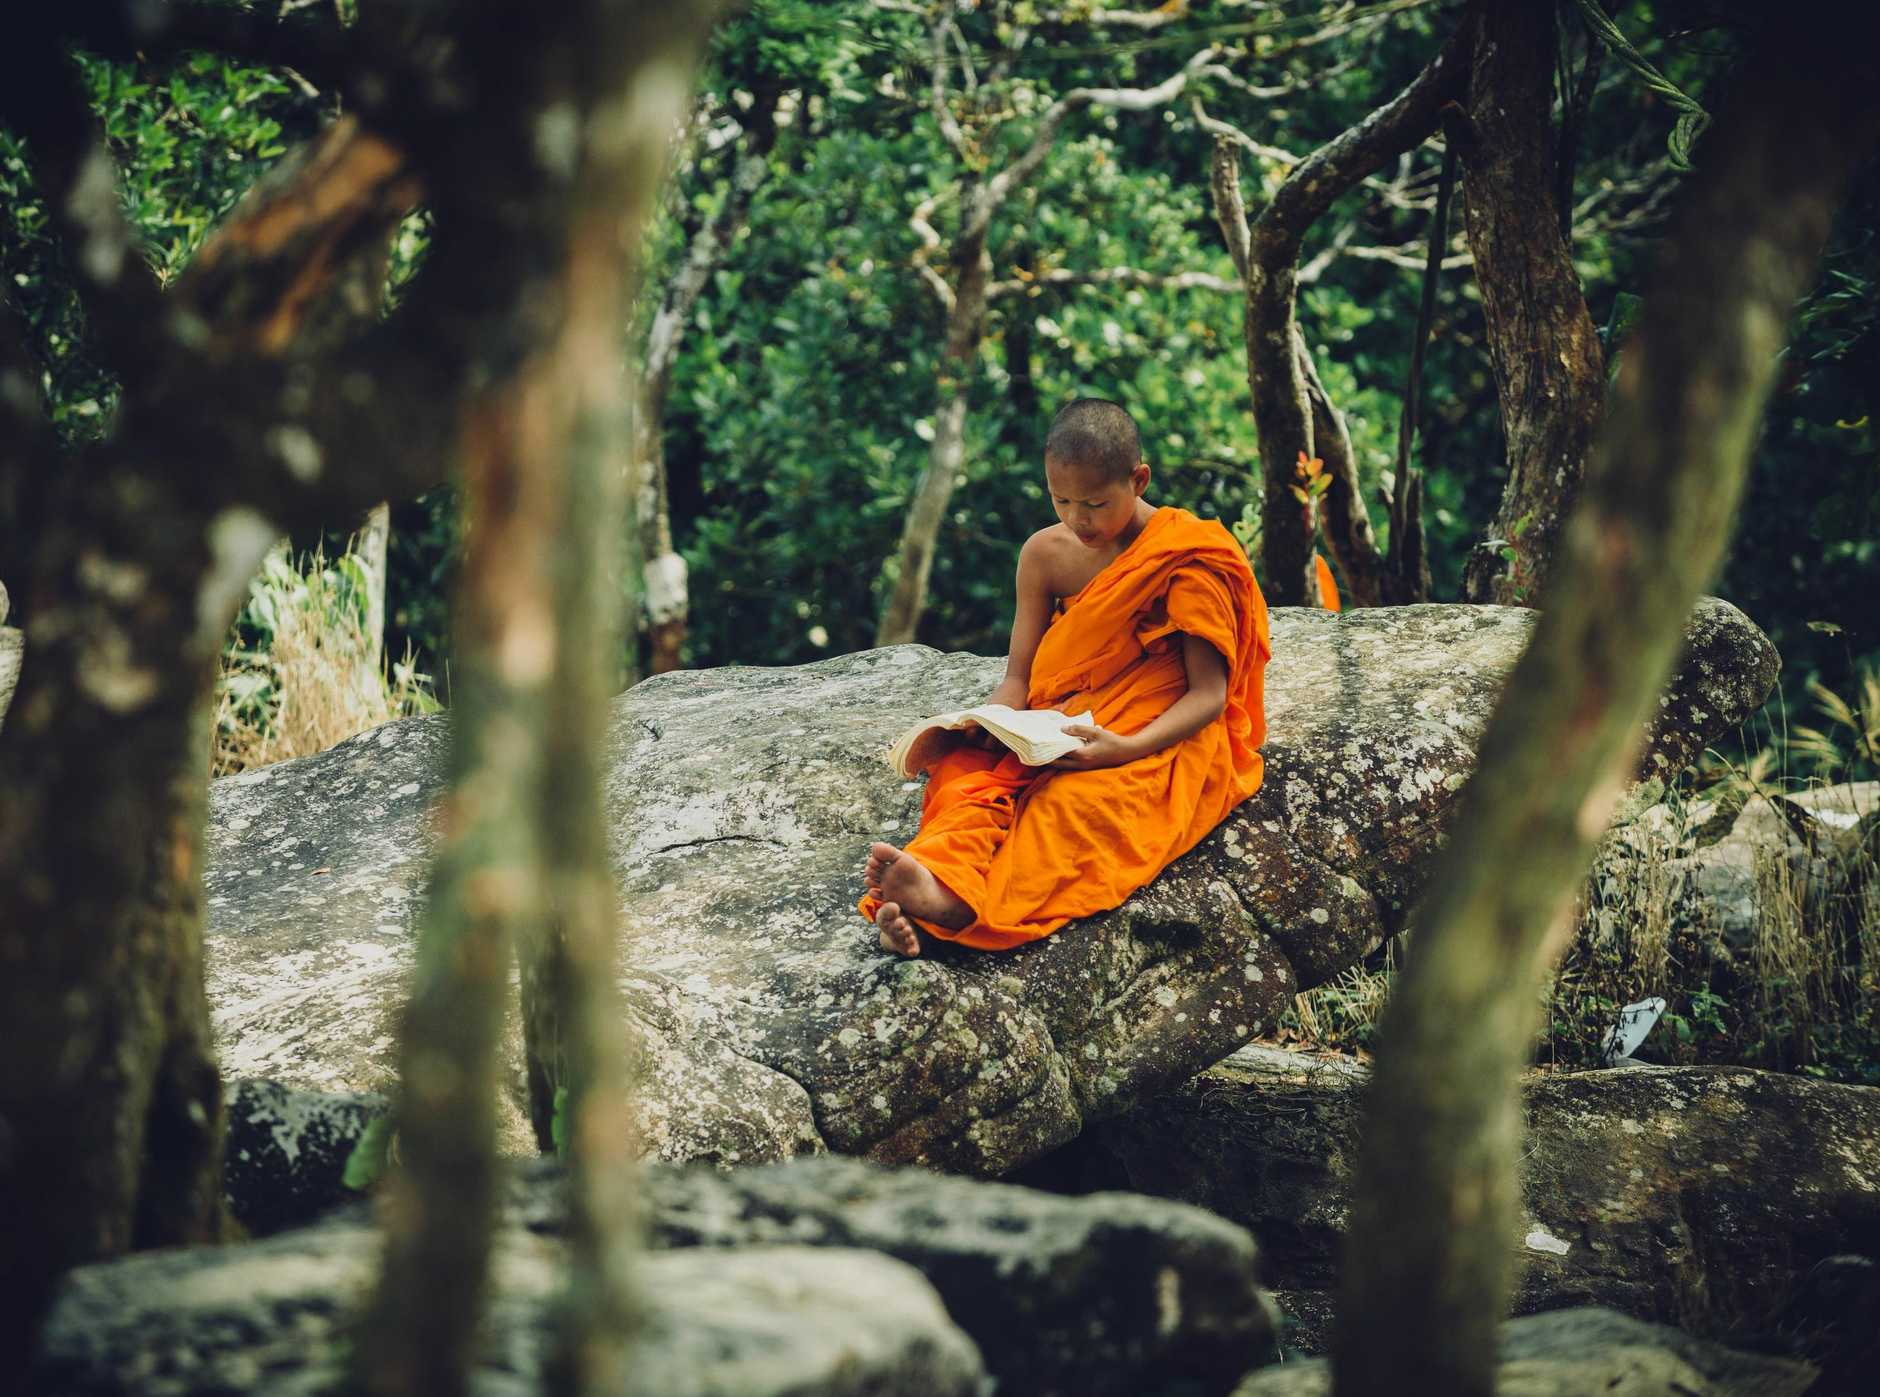 CALM CORNER: A Cambodian Buddhist reads a book under a tree near a temple on a hill in Bokor National Park in Cambodia.